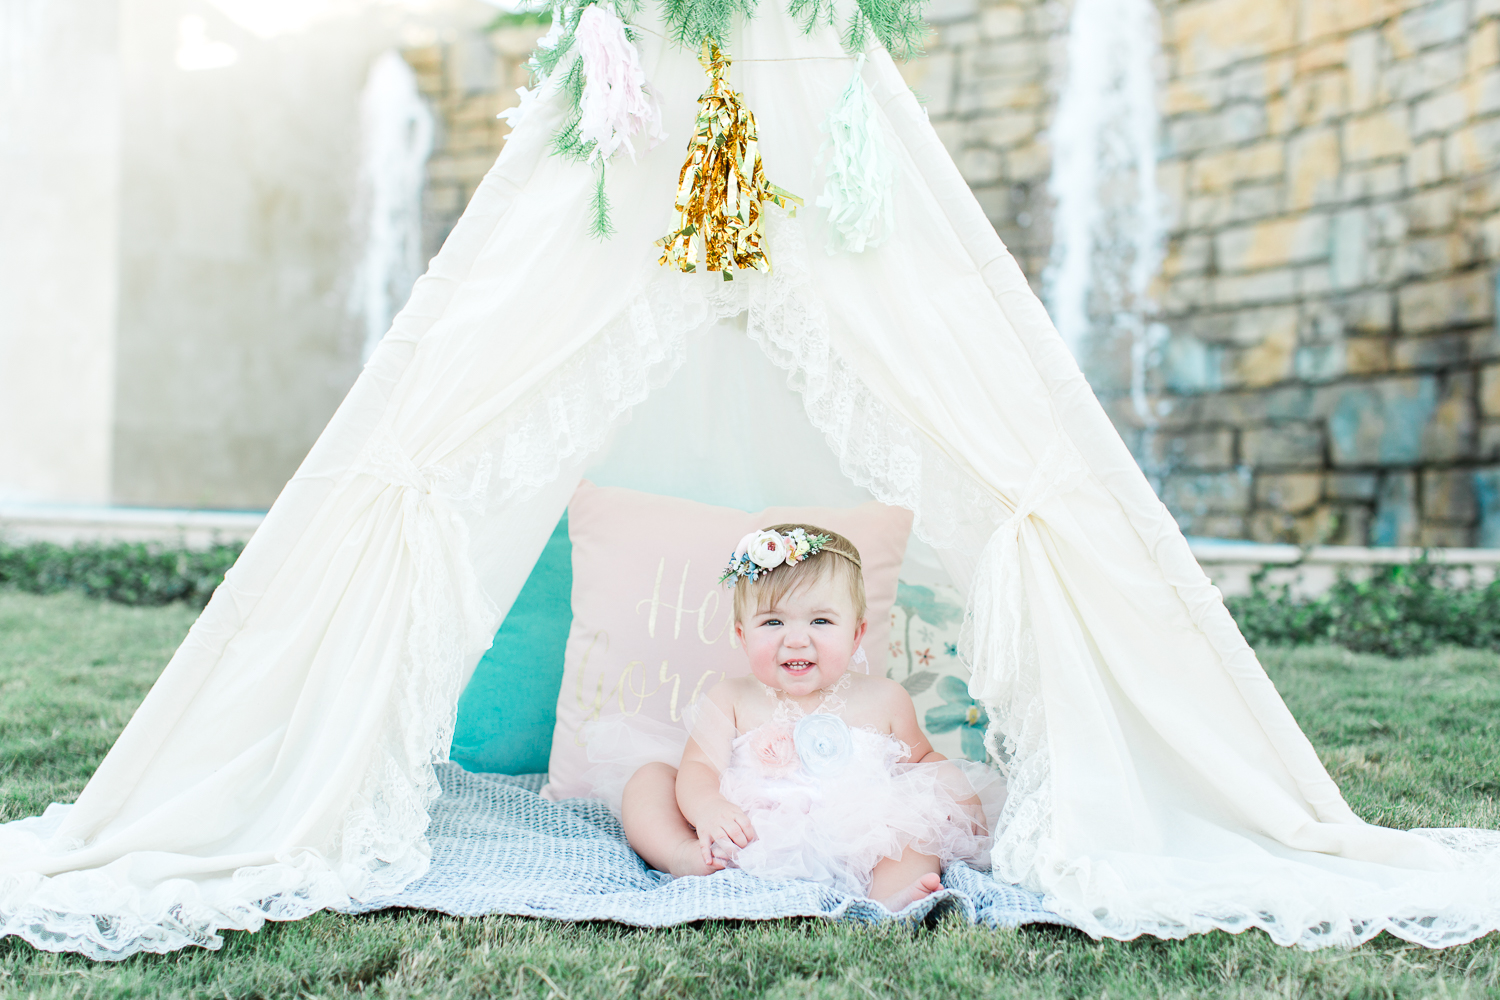 toddler picture ideas with tutu dress, teepee tent. Outfit ideas for first birthday